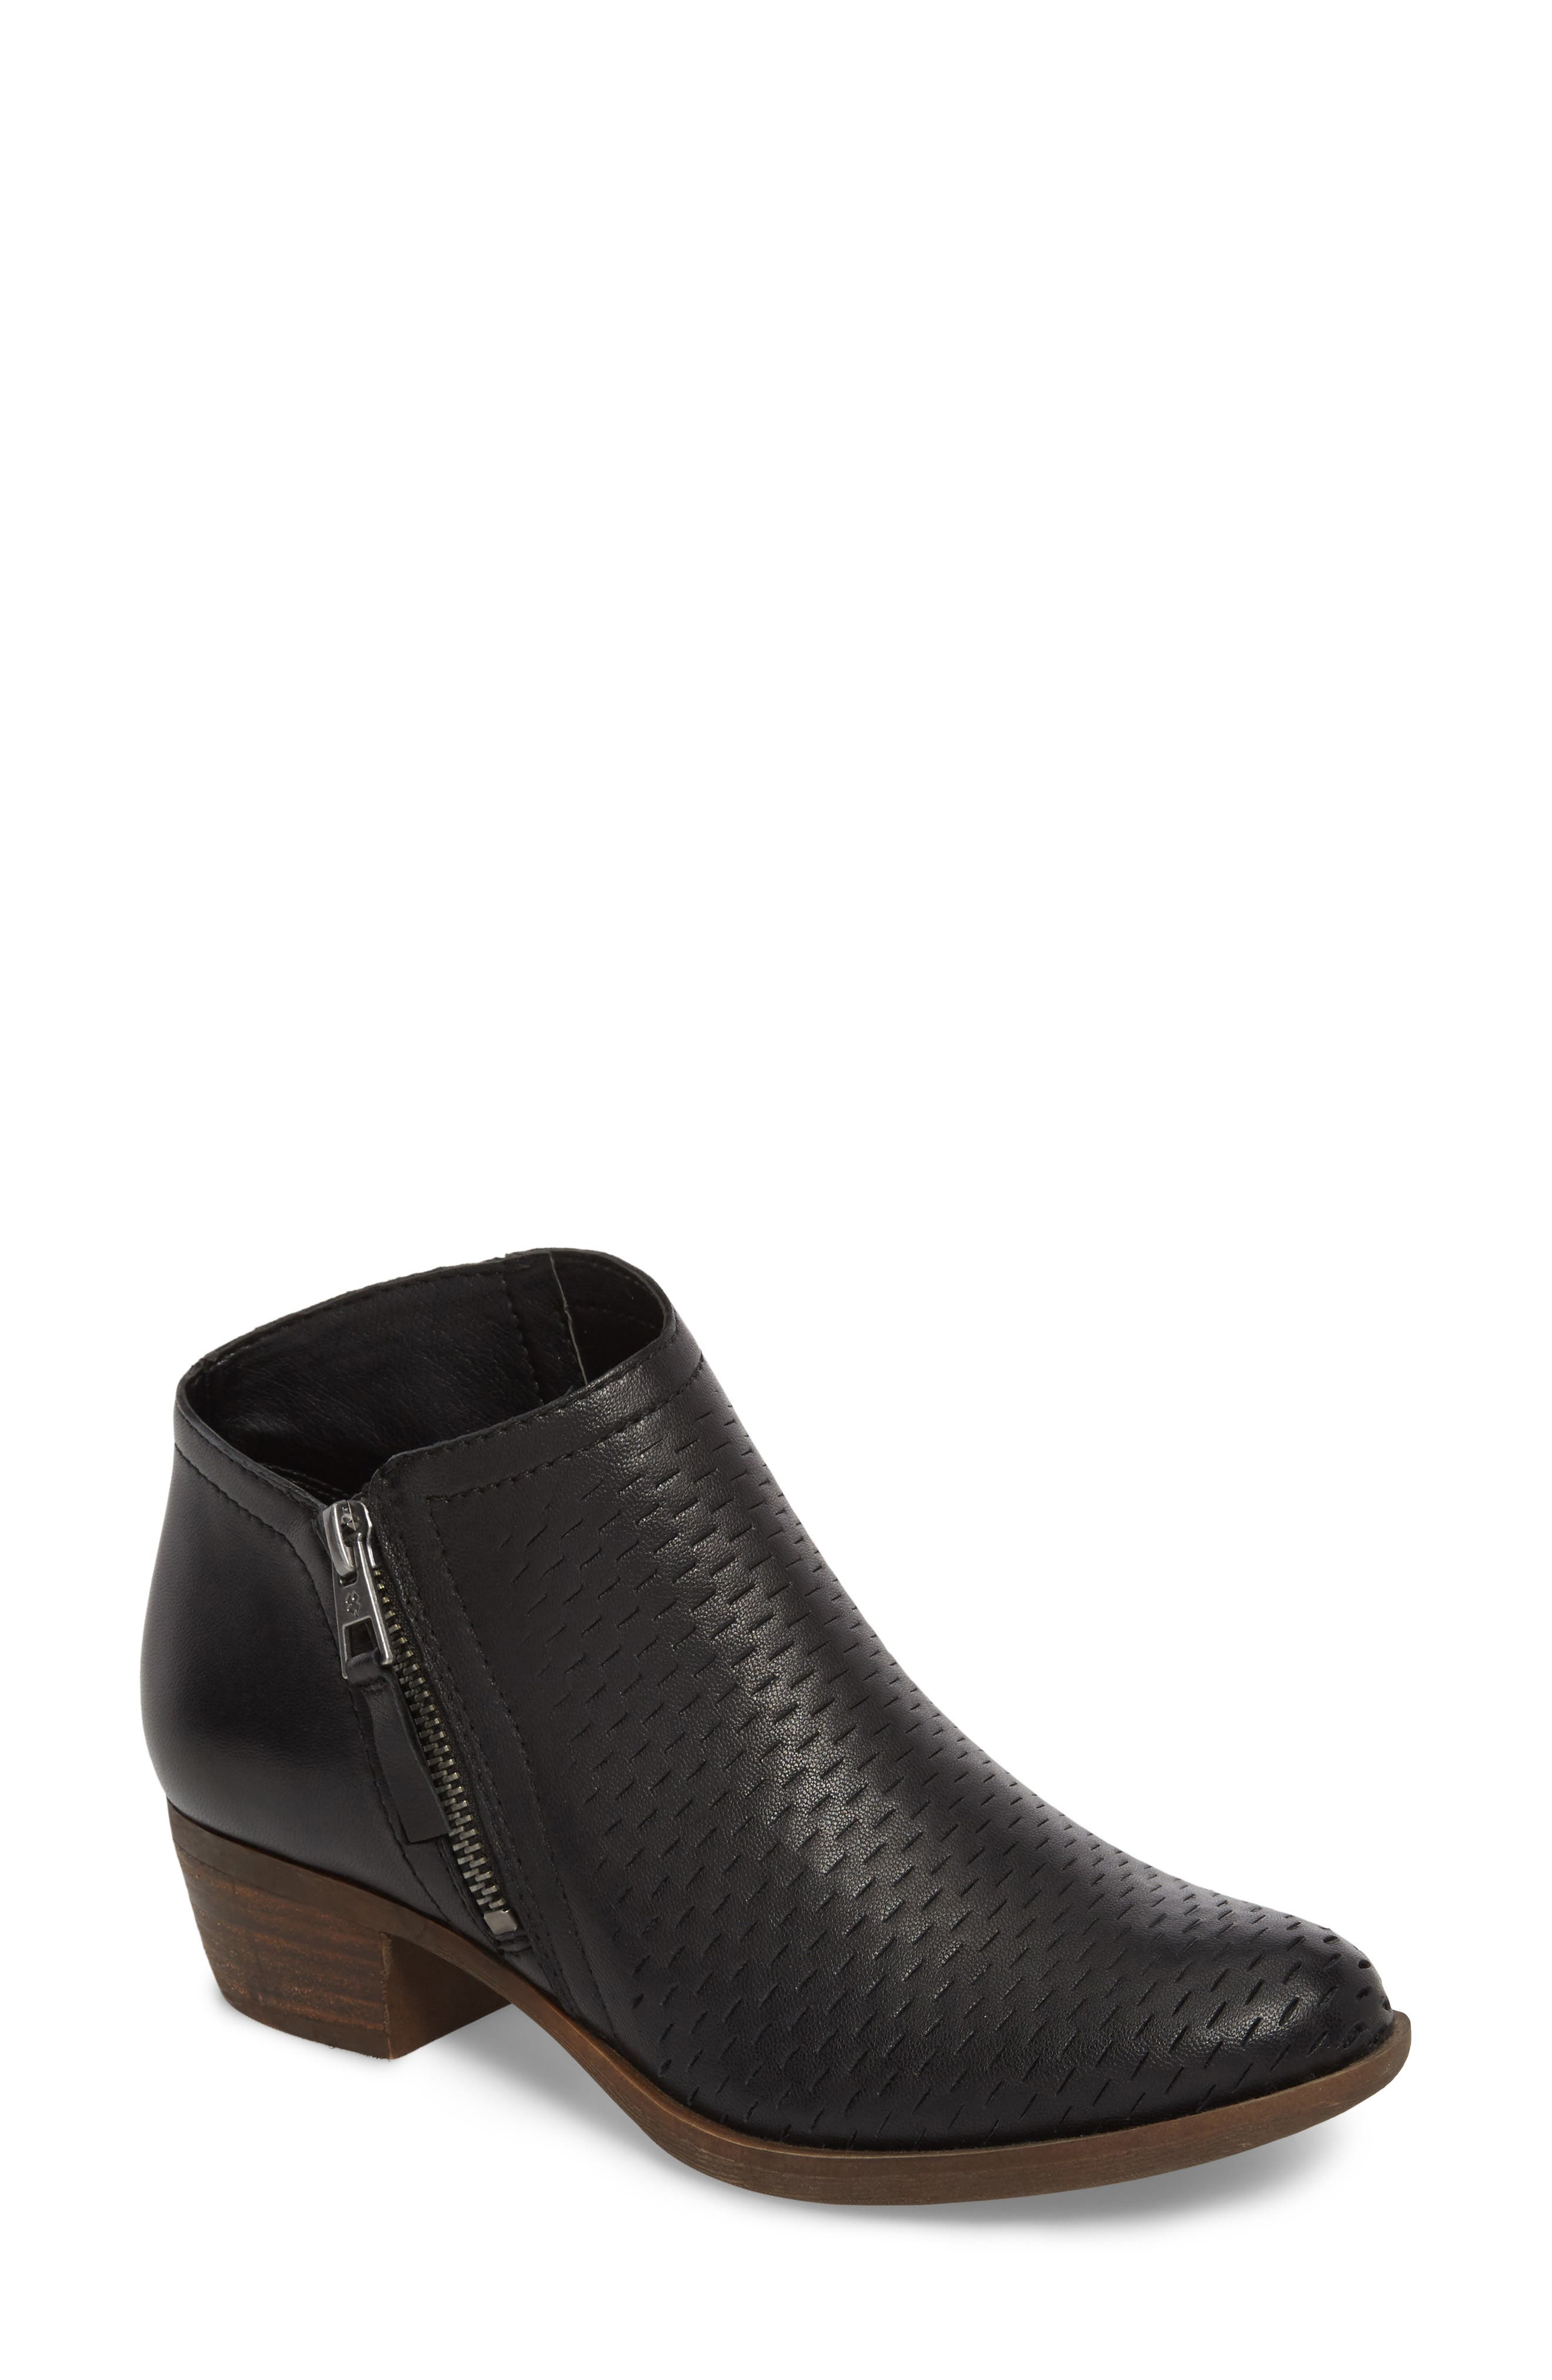 Brielley Perforated Bootie,                         Main,                         color, 002